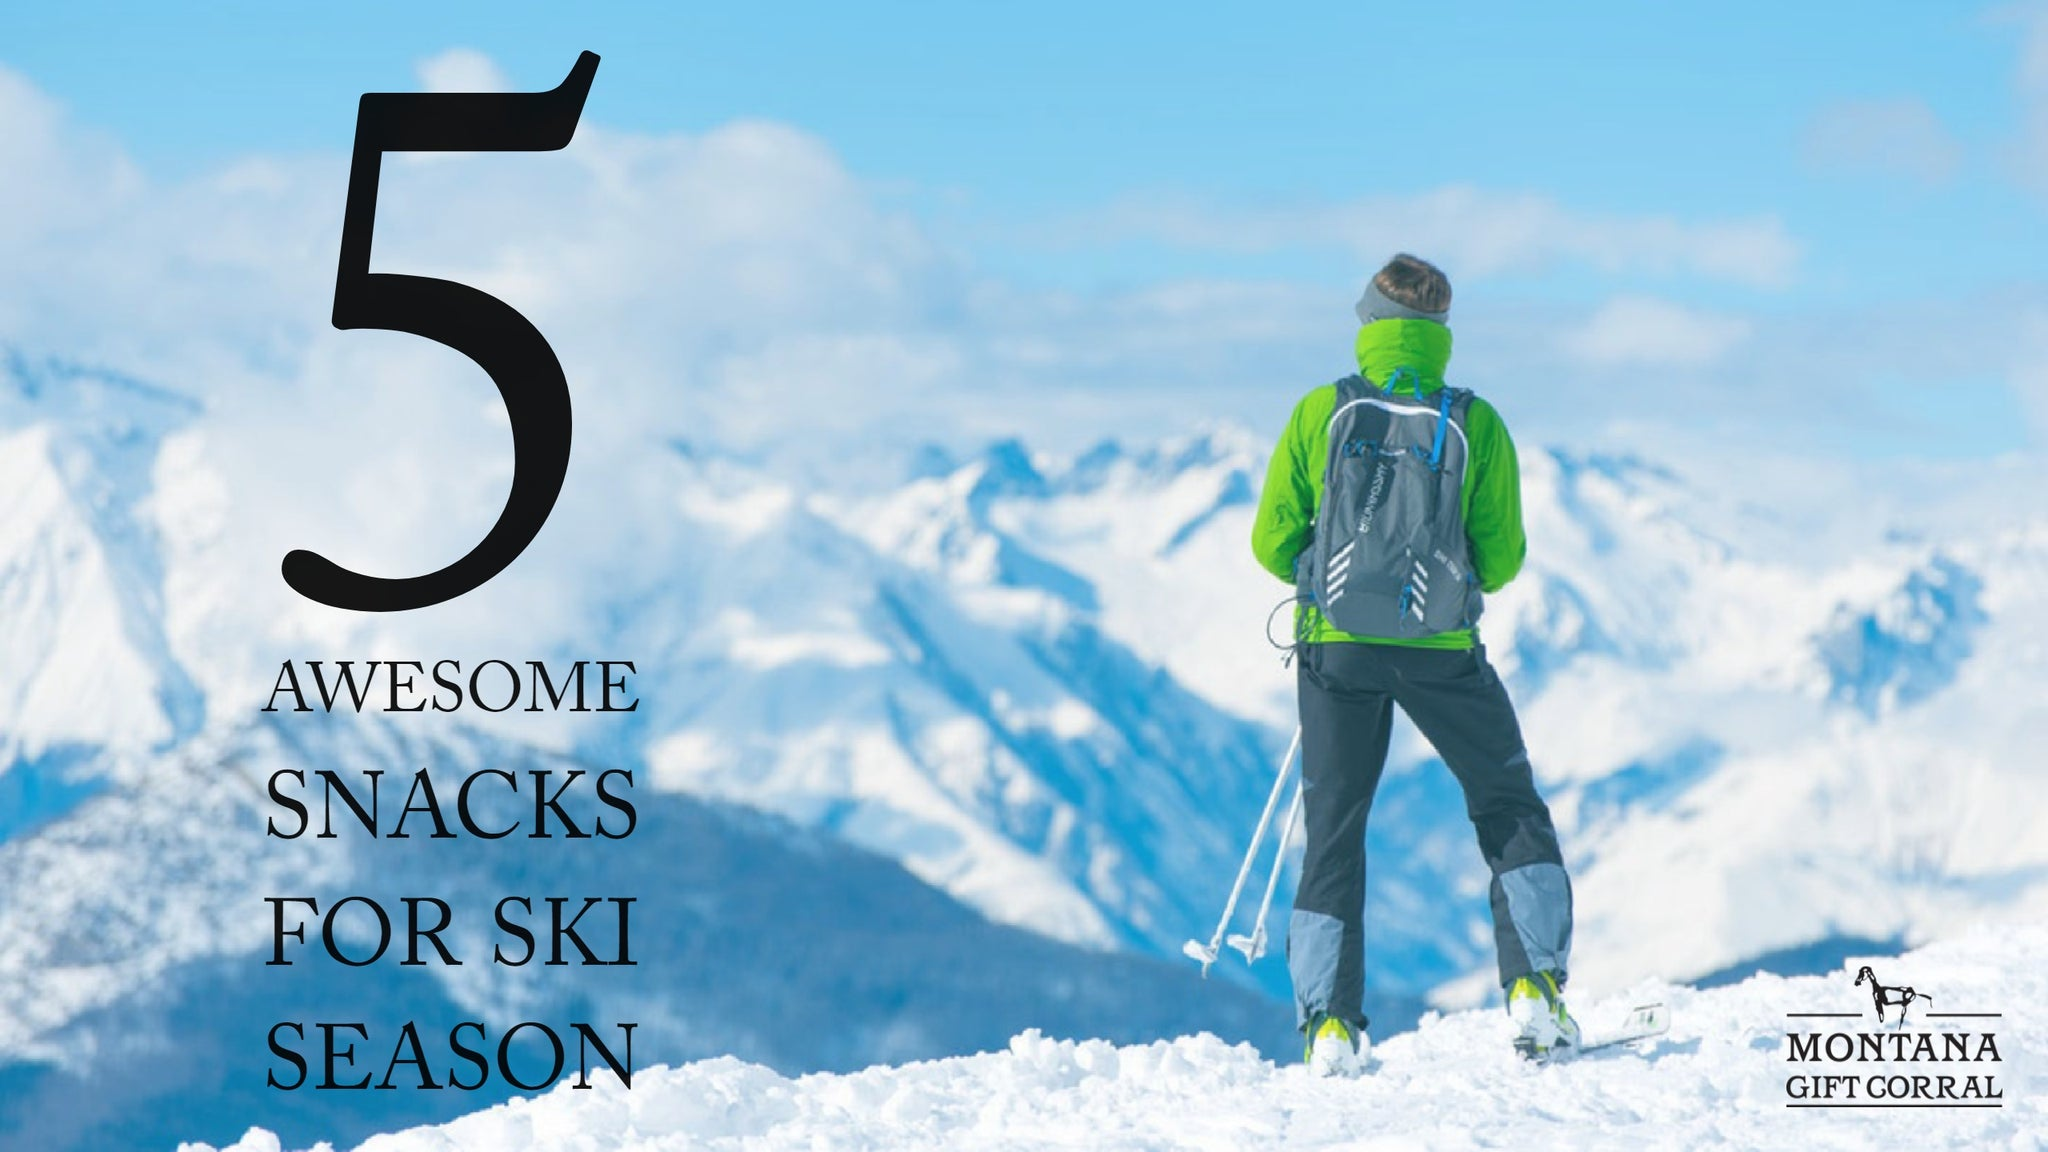 5 Awesome Snacks for Ski Season